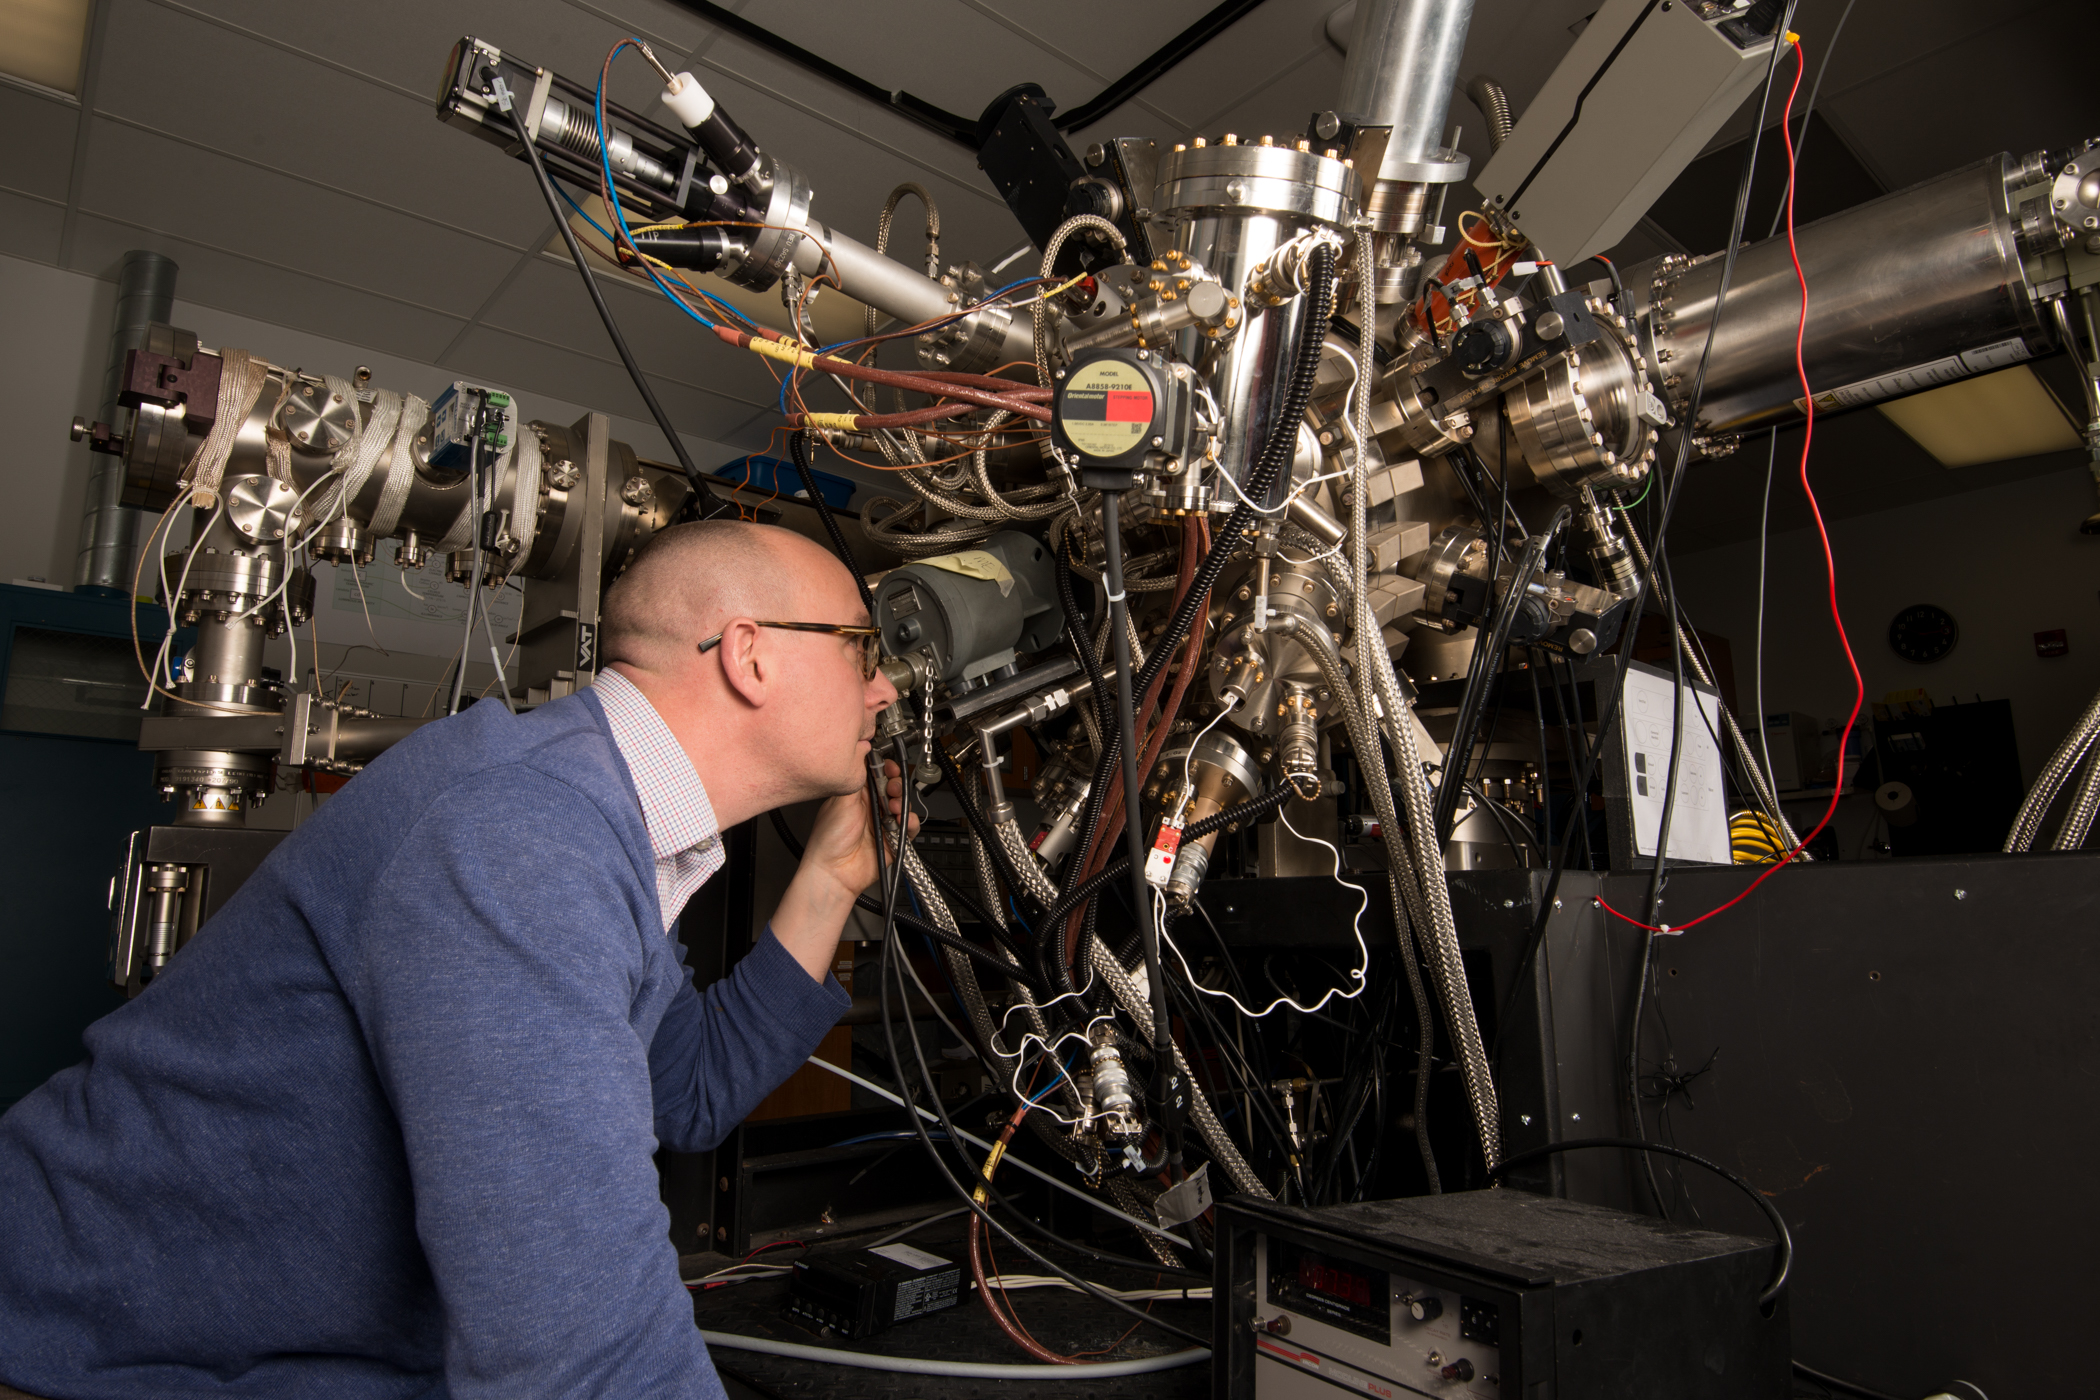 Simmonds looking closely at Molecular Beam Epitaxy device